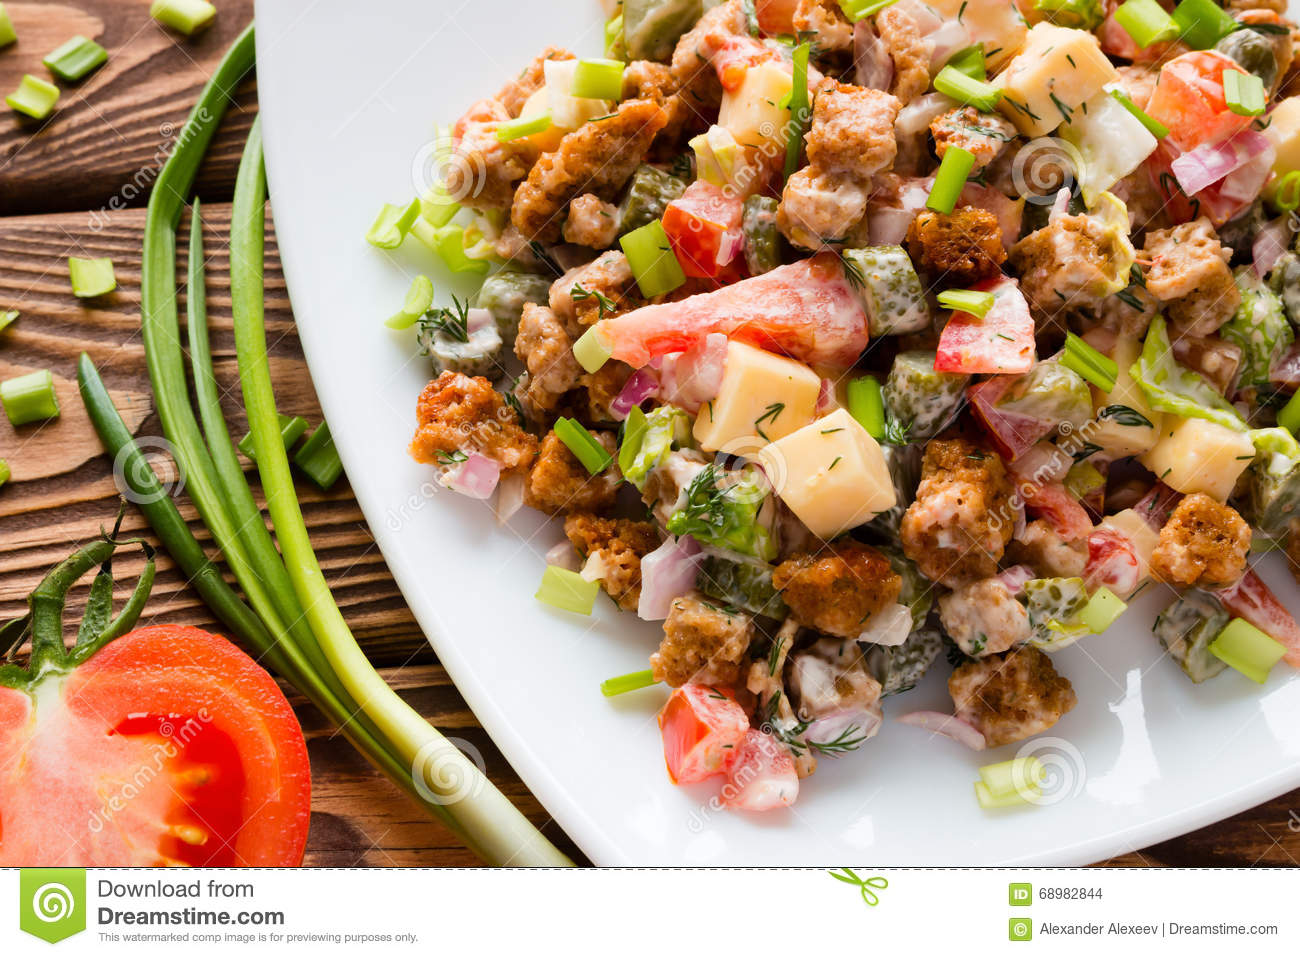 Salad with mayonnaise close to the green onions and half a tomato